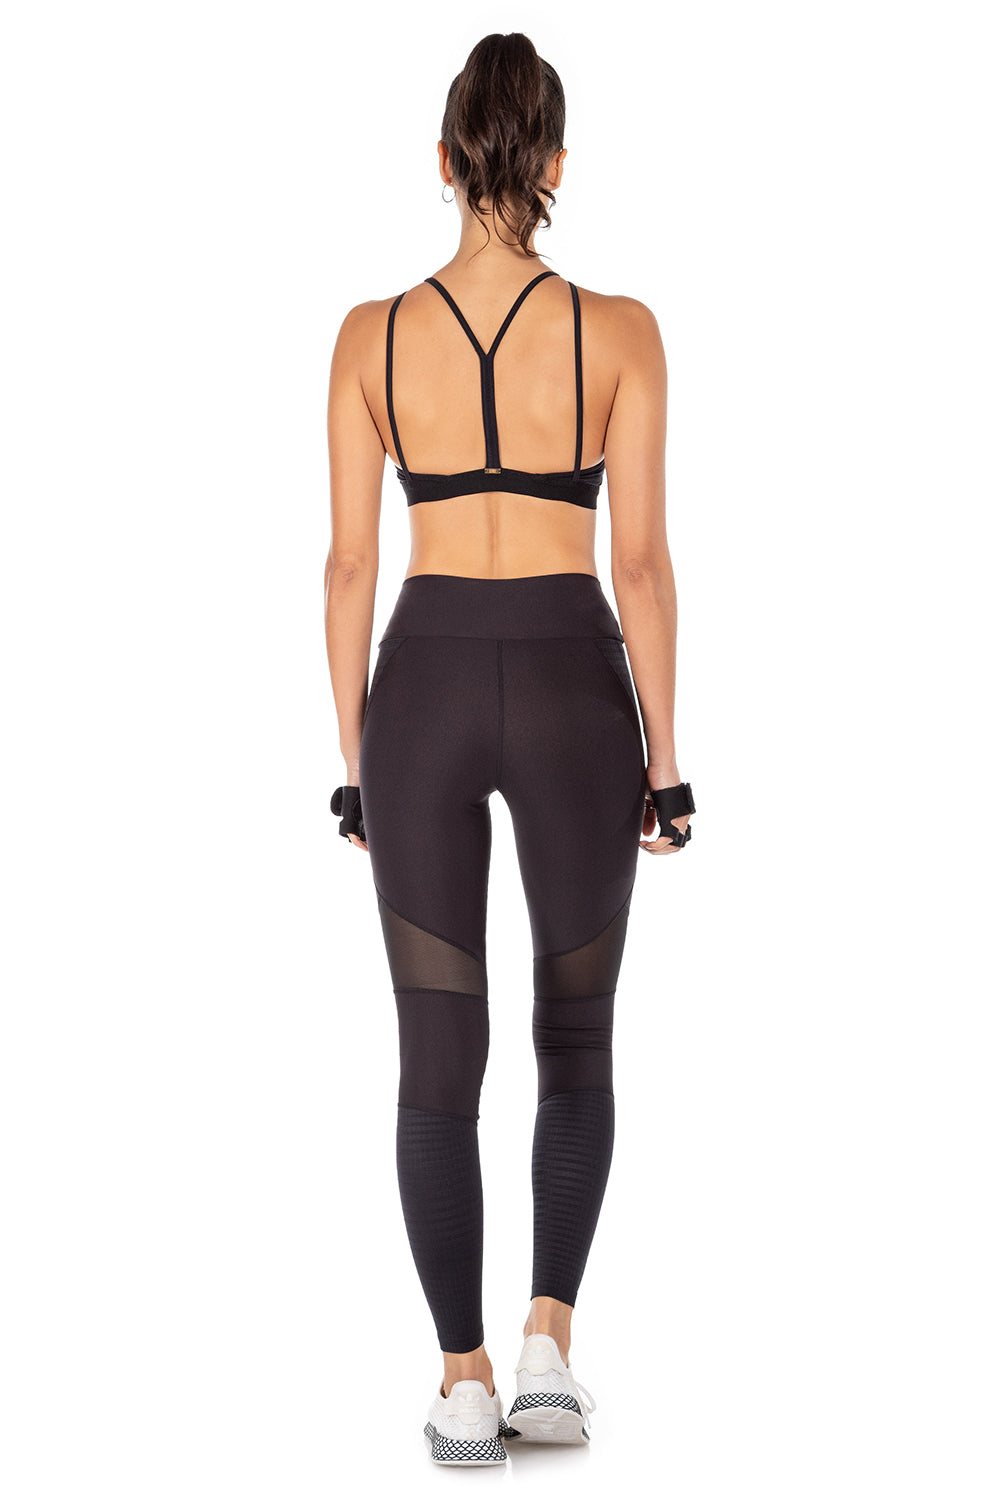 Marathon Cutouts Tight